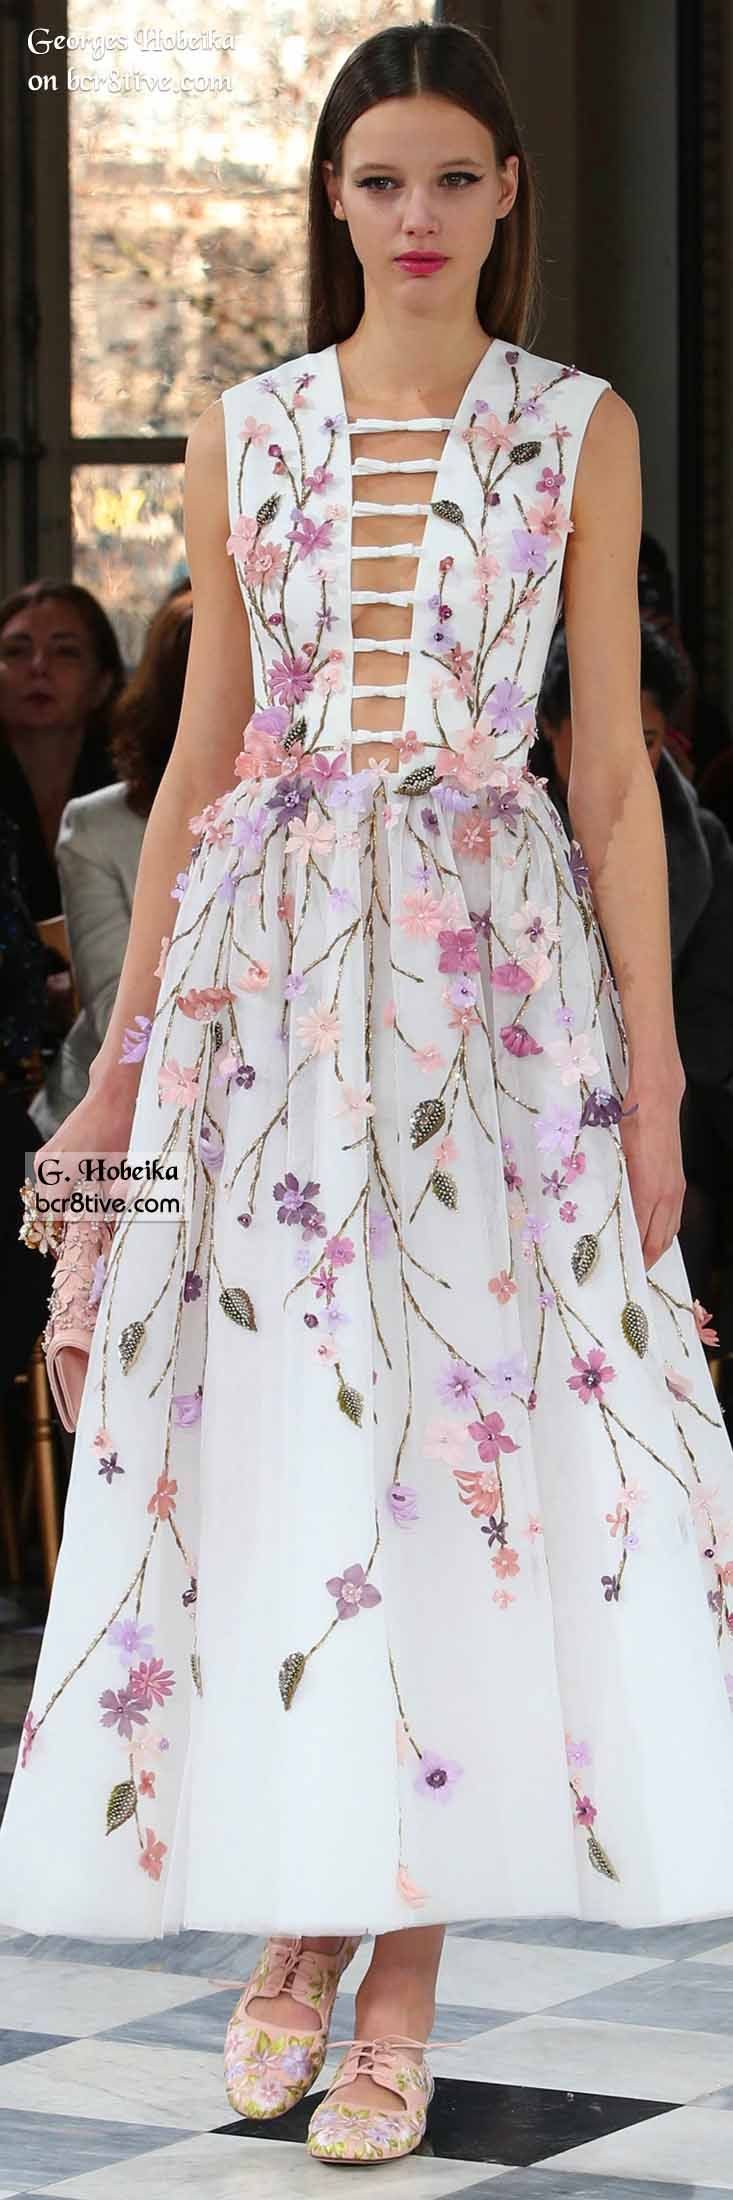 best itus all in the details images on pinterest fashion